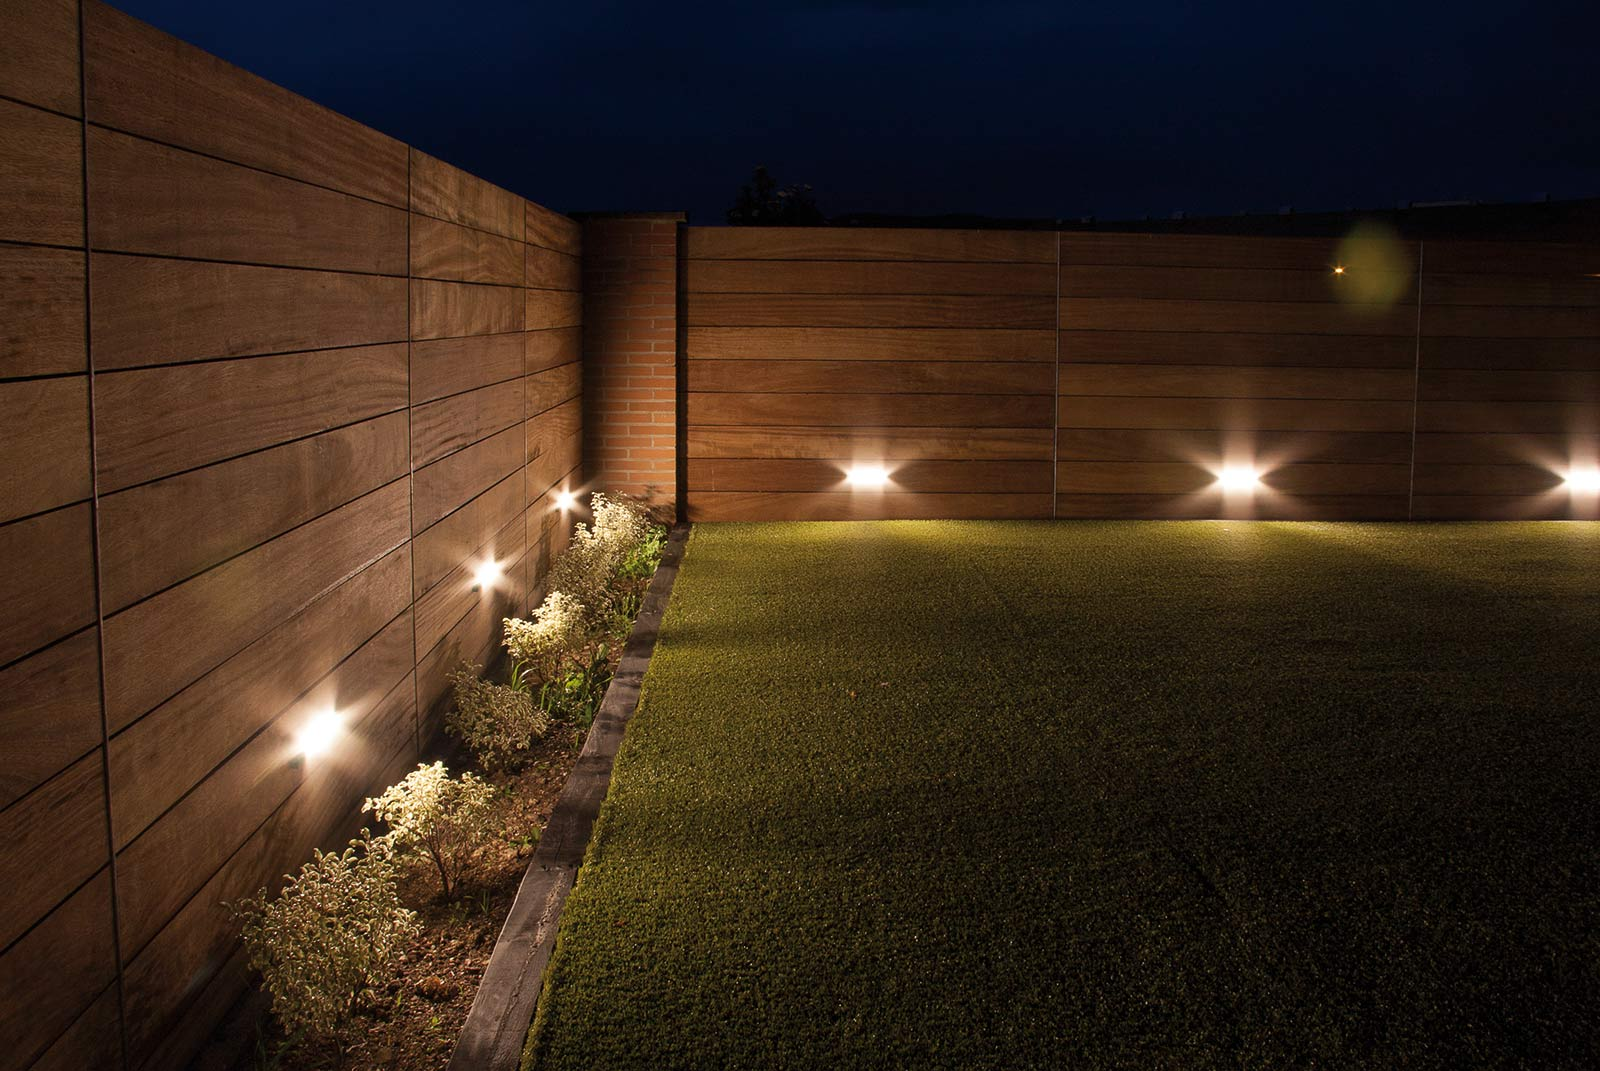 Jard n con iluminaci n nocturna proyectos echarri for Luces para jardin sin cables